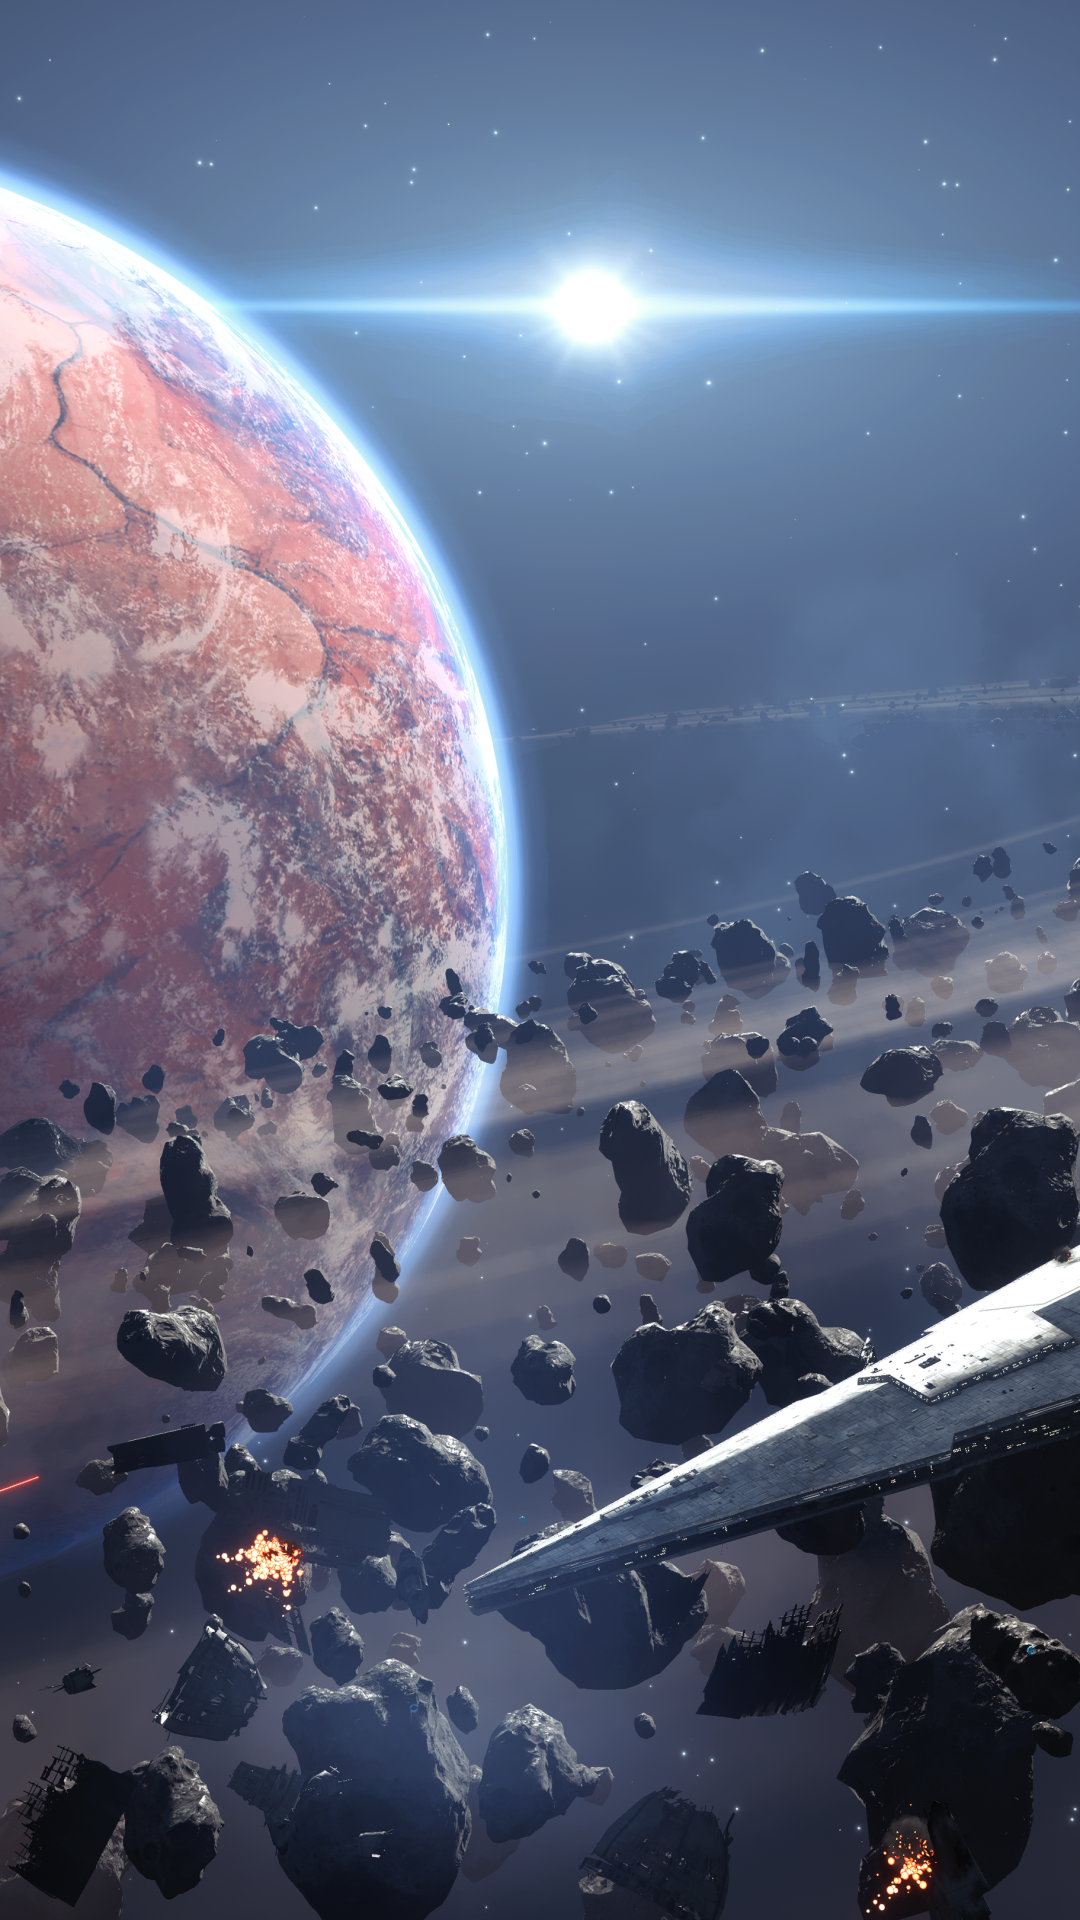 Star Wars Planets Wallpaper Posted By Ryan Simpson